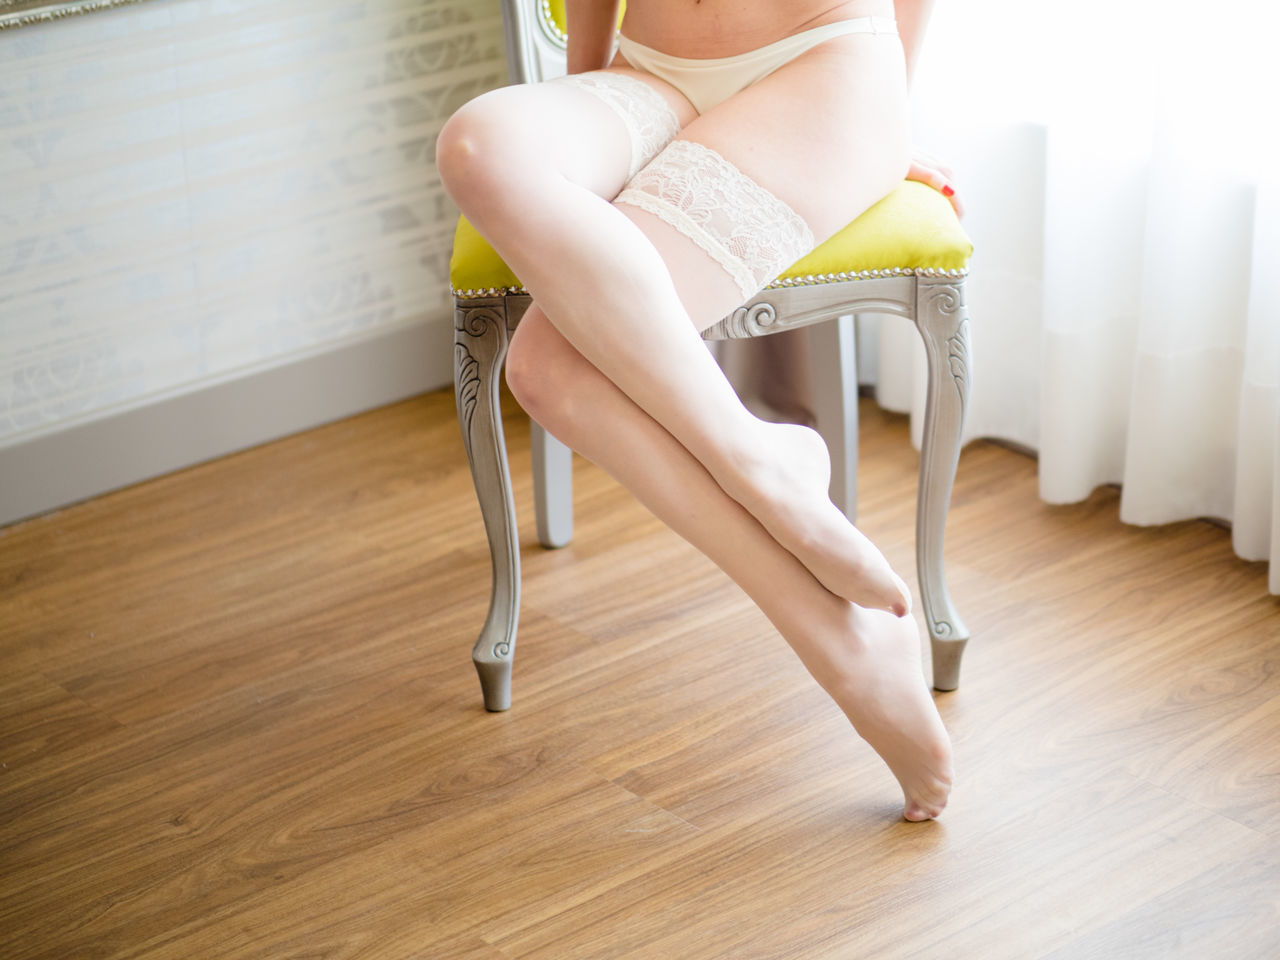 Woman wearing stockings in her bedroom Beauty Close-up Day Domestic Life Domestic Room Females Gold Colored Hardwood Floor Home Interior Human Body Part Human Leg Indoors  Lifestyles Lingerie Low Section One Person One Woman Only Only Women People